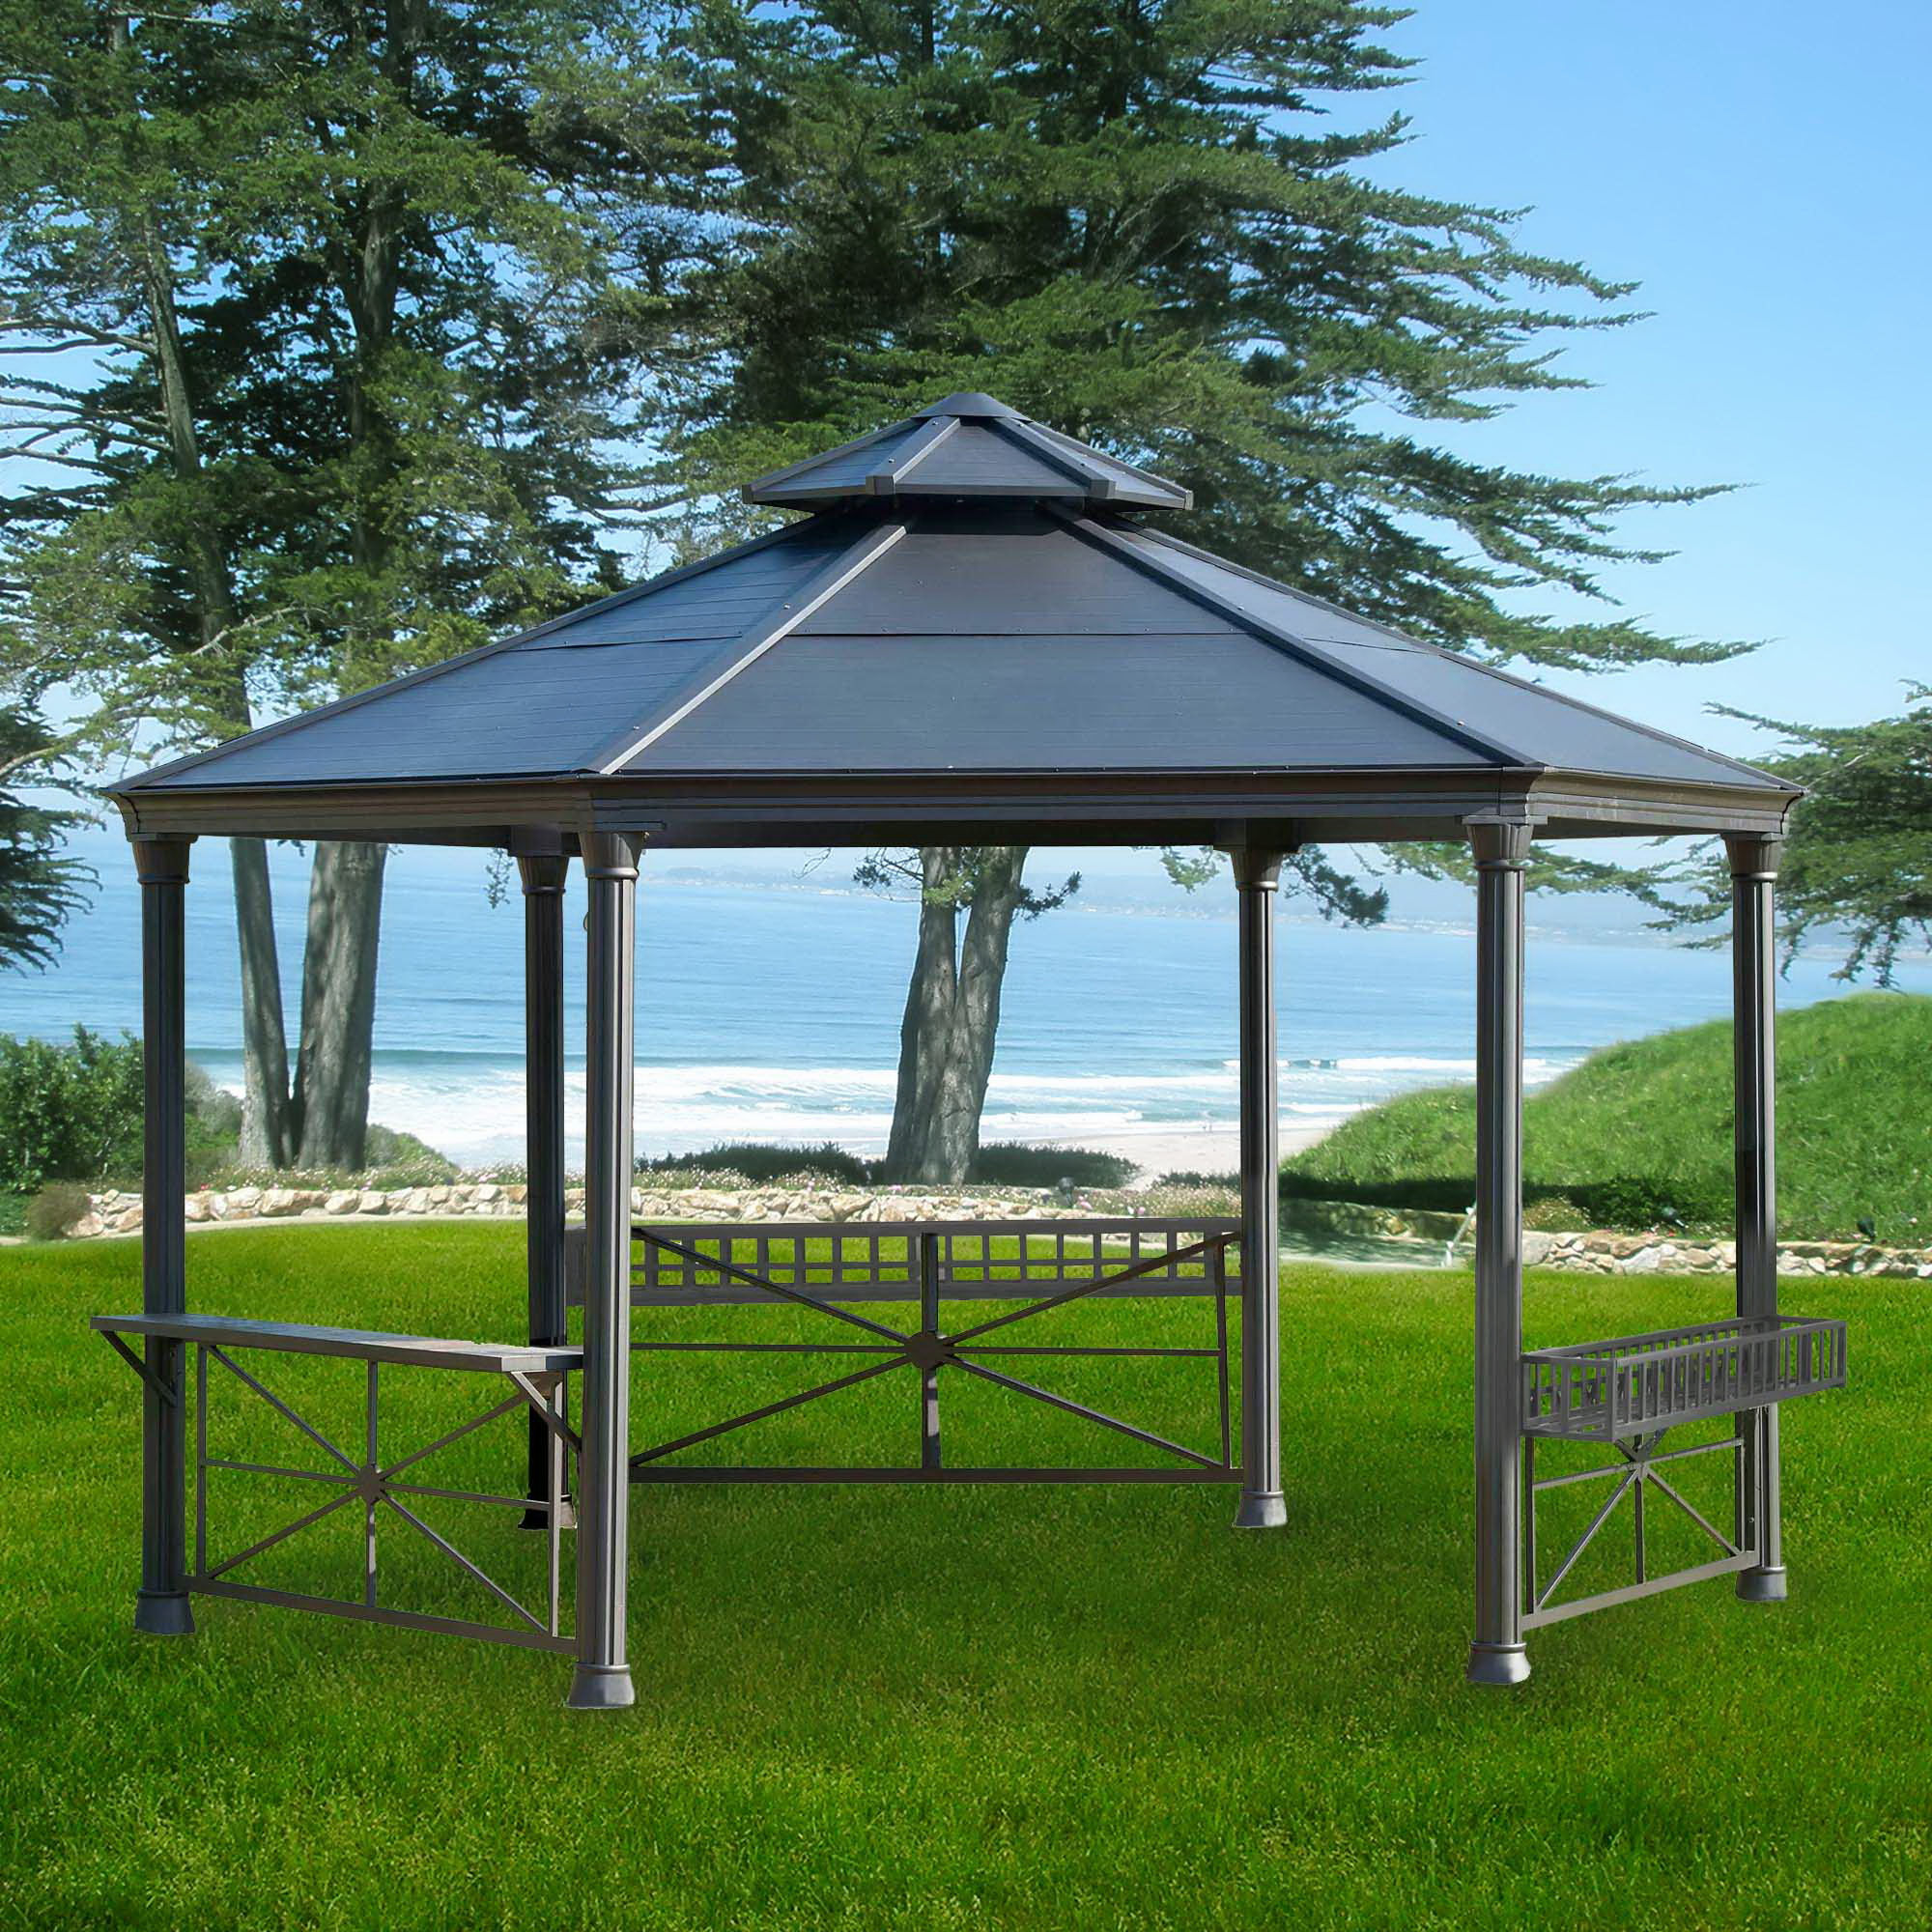 Amazing sunjoy gazebo for garden ideas with sunjoy hardtop gazebo and sunjoy grill gazebo